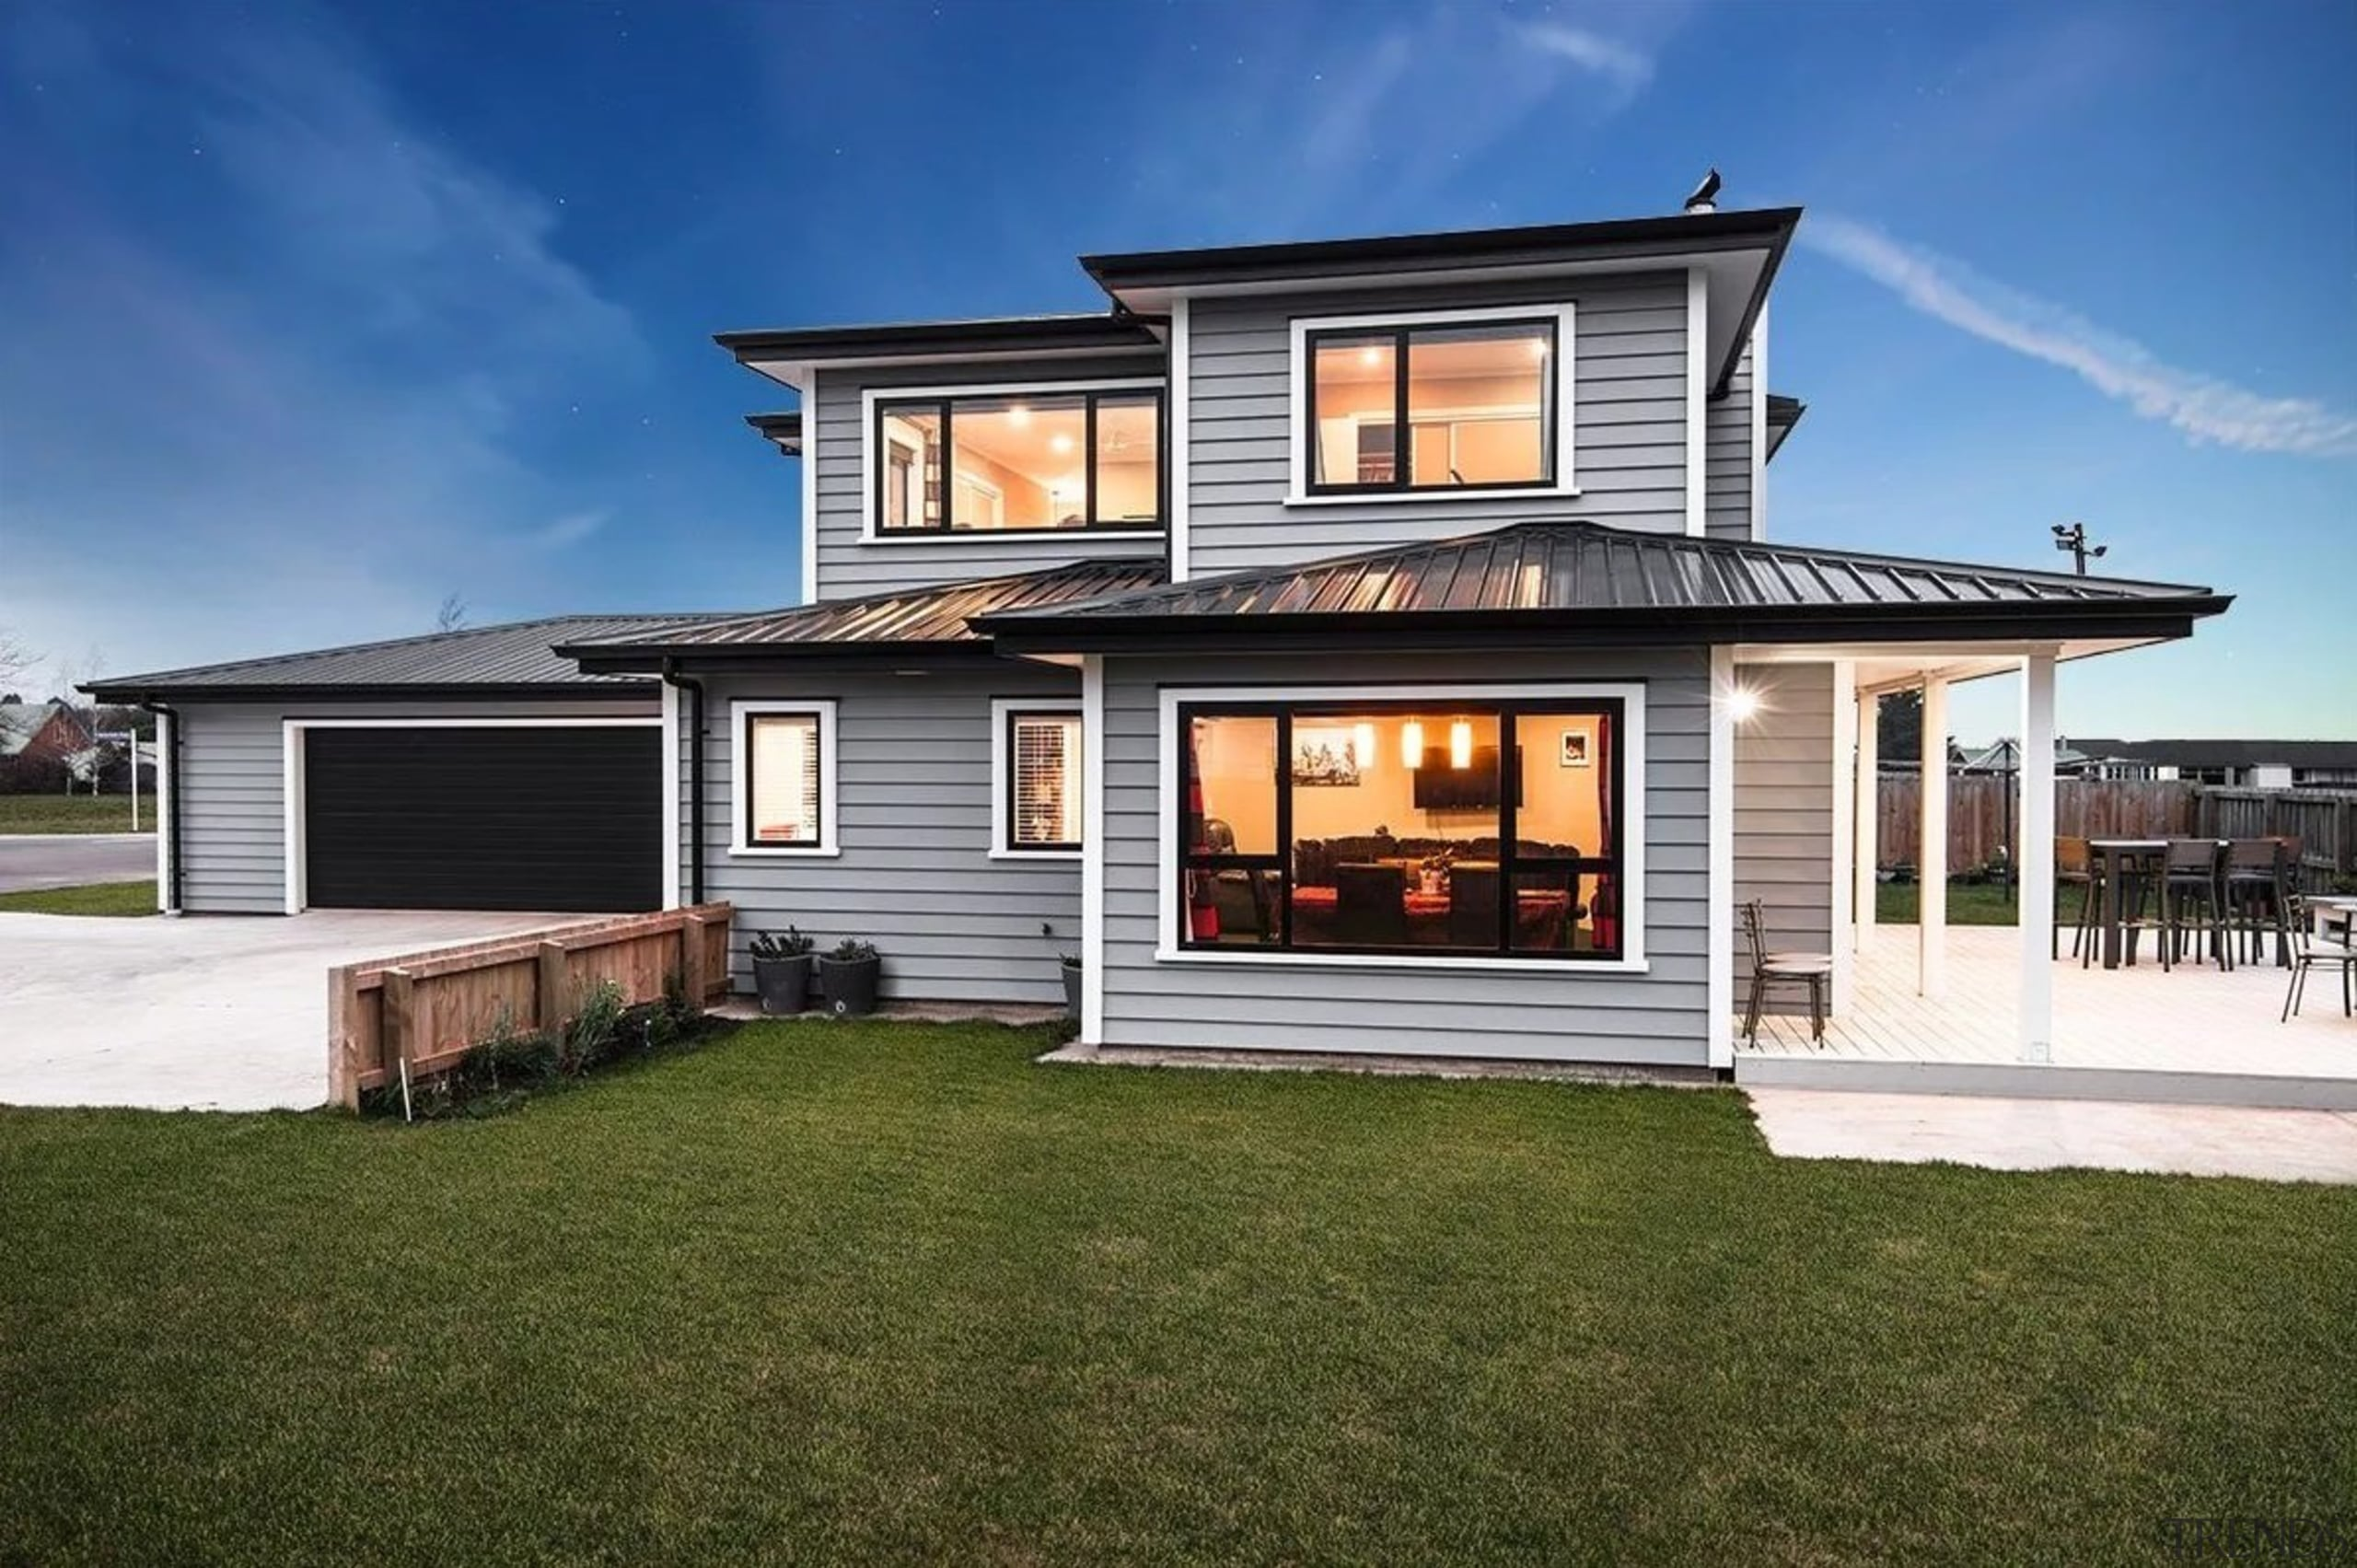 Envira bevel back weatherboards - Envira bevel back cottage, elevation, estate, facade, home, house, luxury vehicle, property, real estate, residential area, siding, window, brown, blue